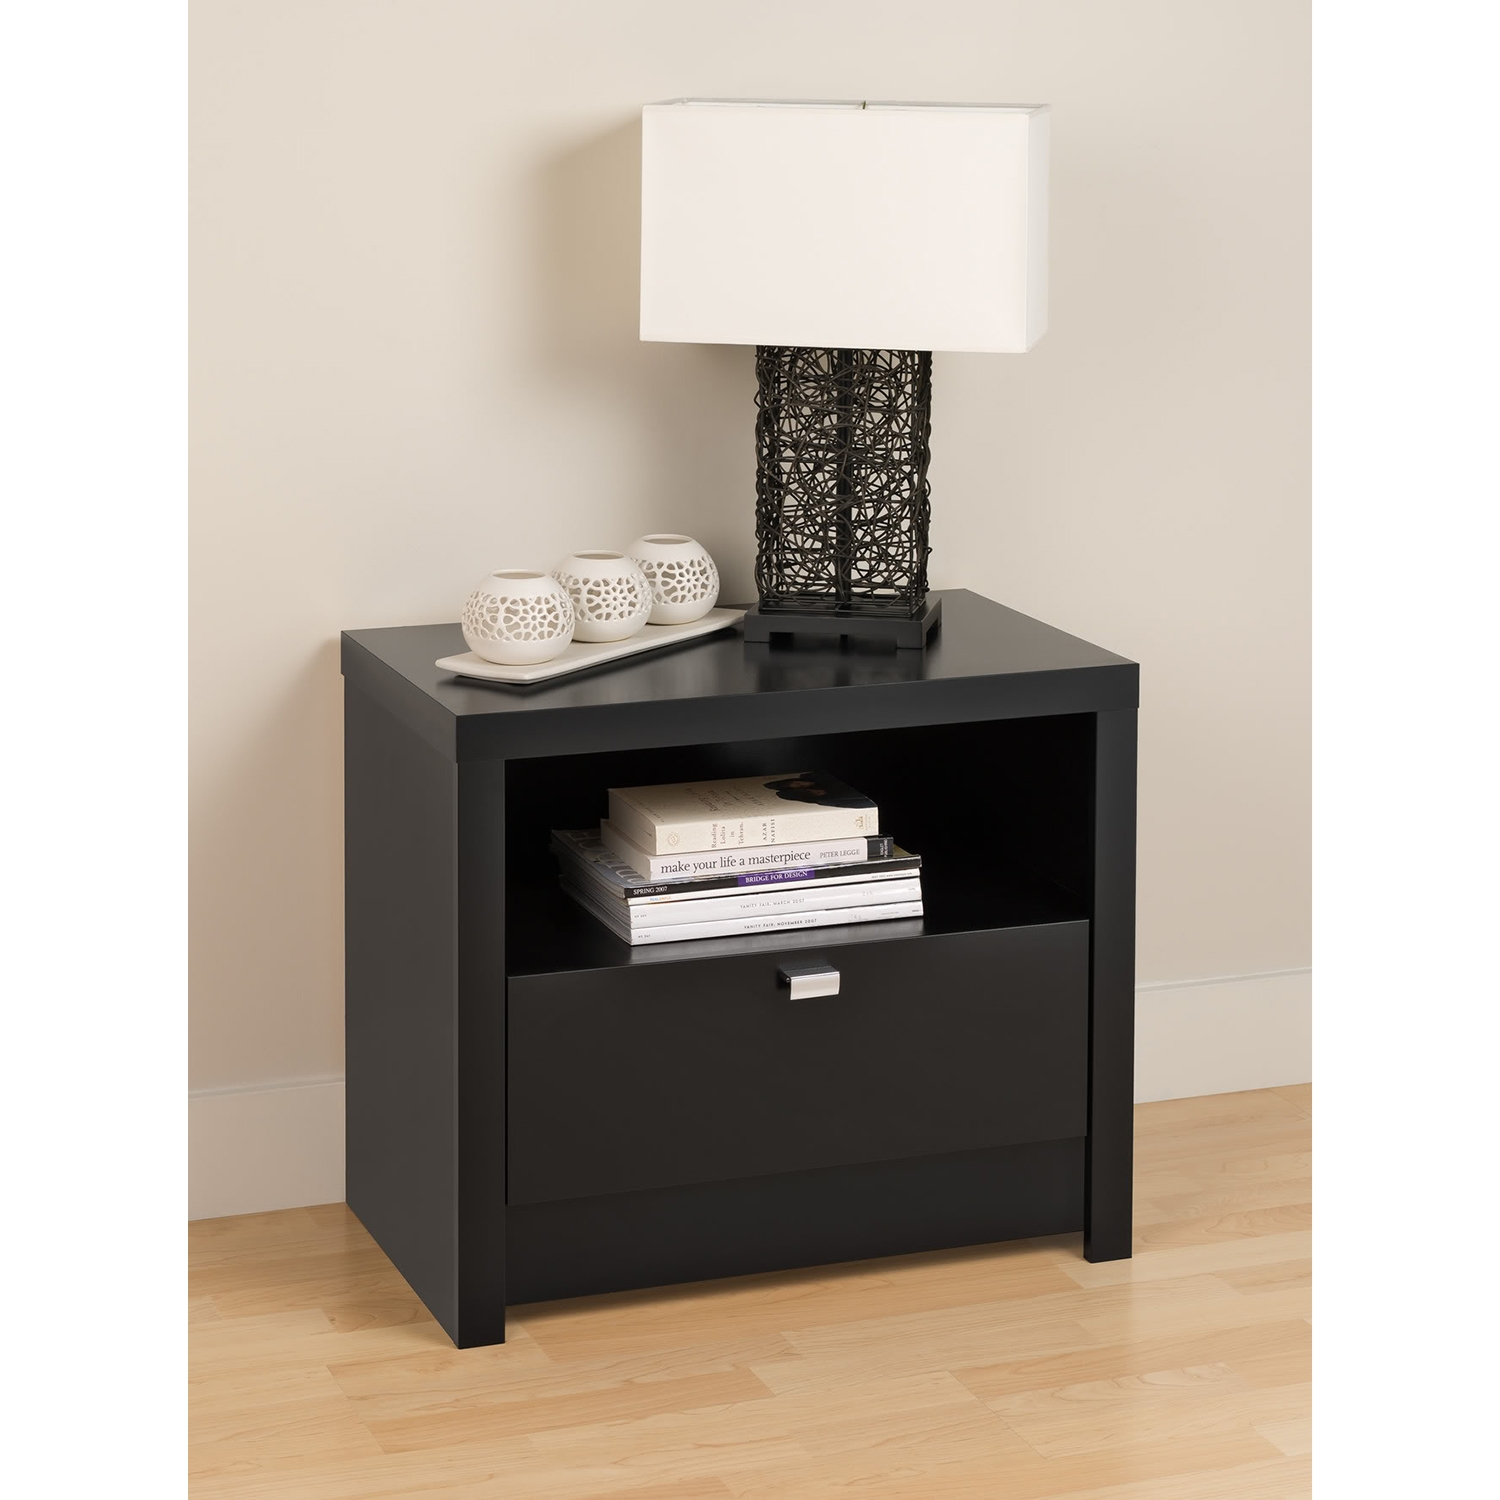 Series 9 Designer 1-Drawer Nightstand - Black